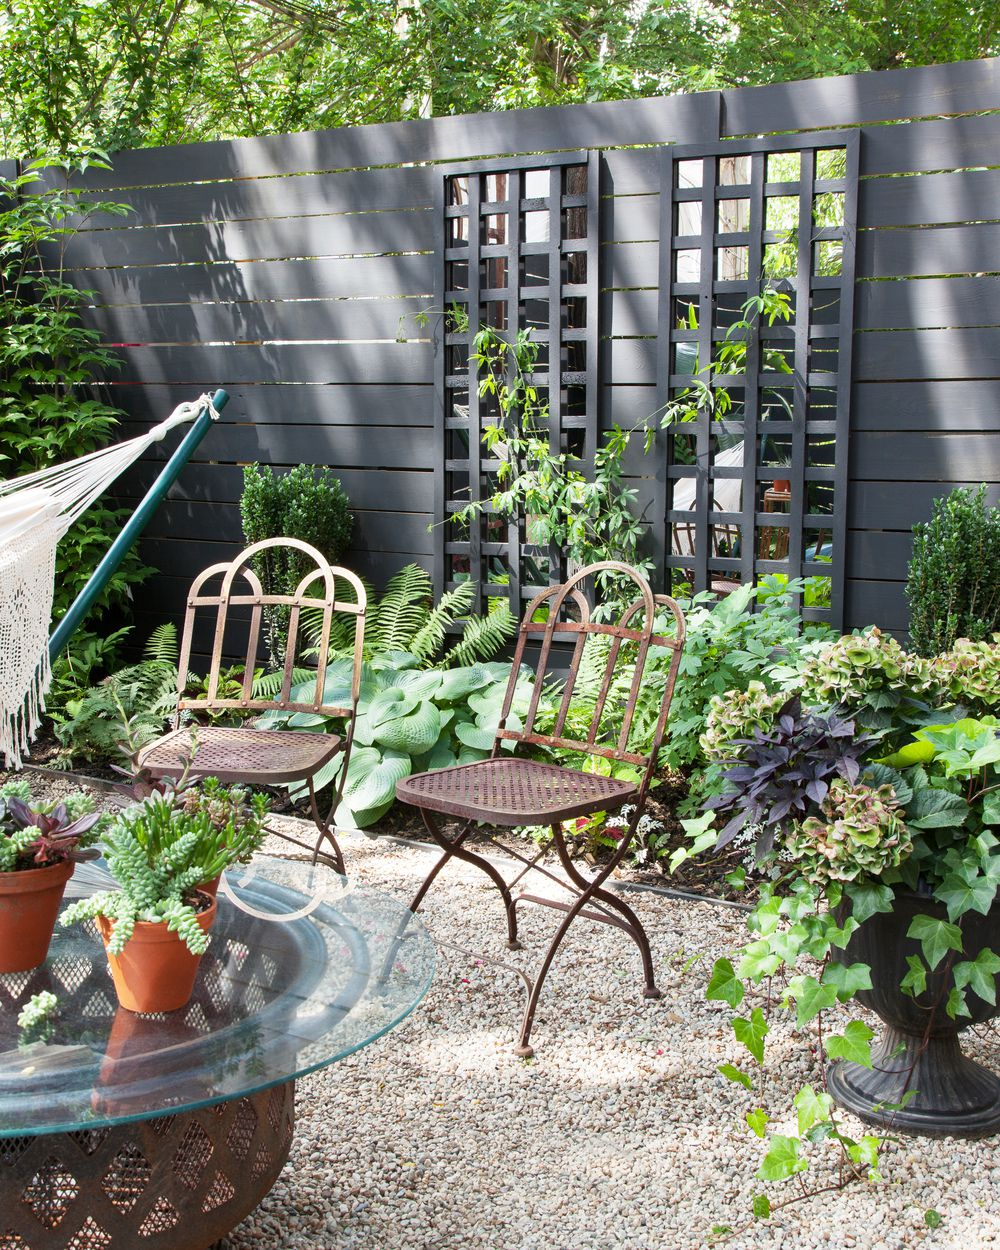 30 Best Patio and Porch Design Ideas - Decorating Your Outdoor Space